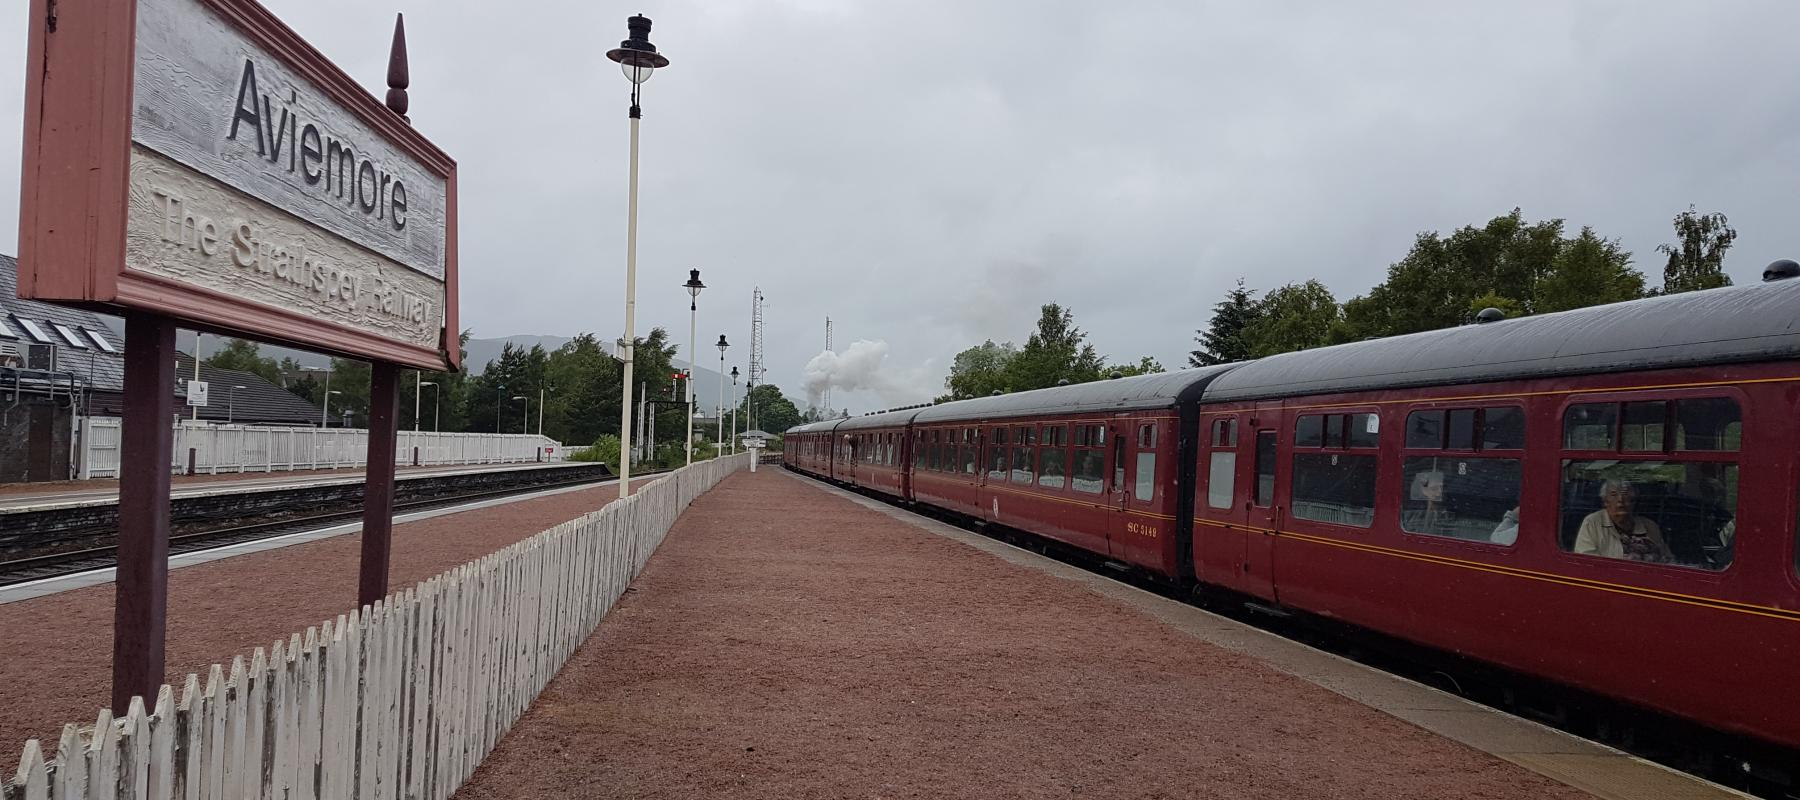 Strathspey Railway train departs Aviemore